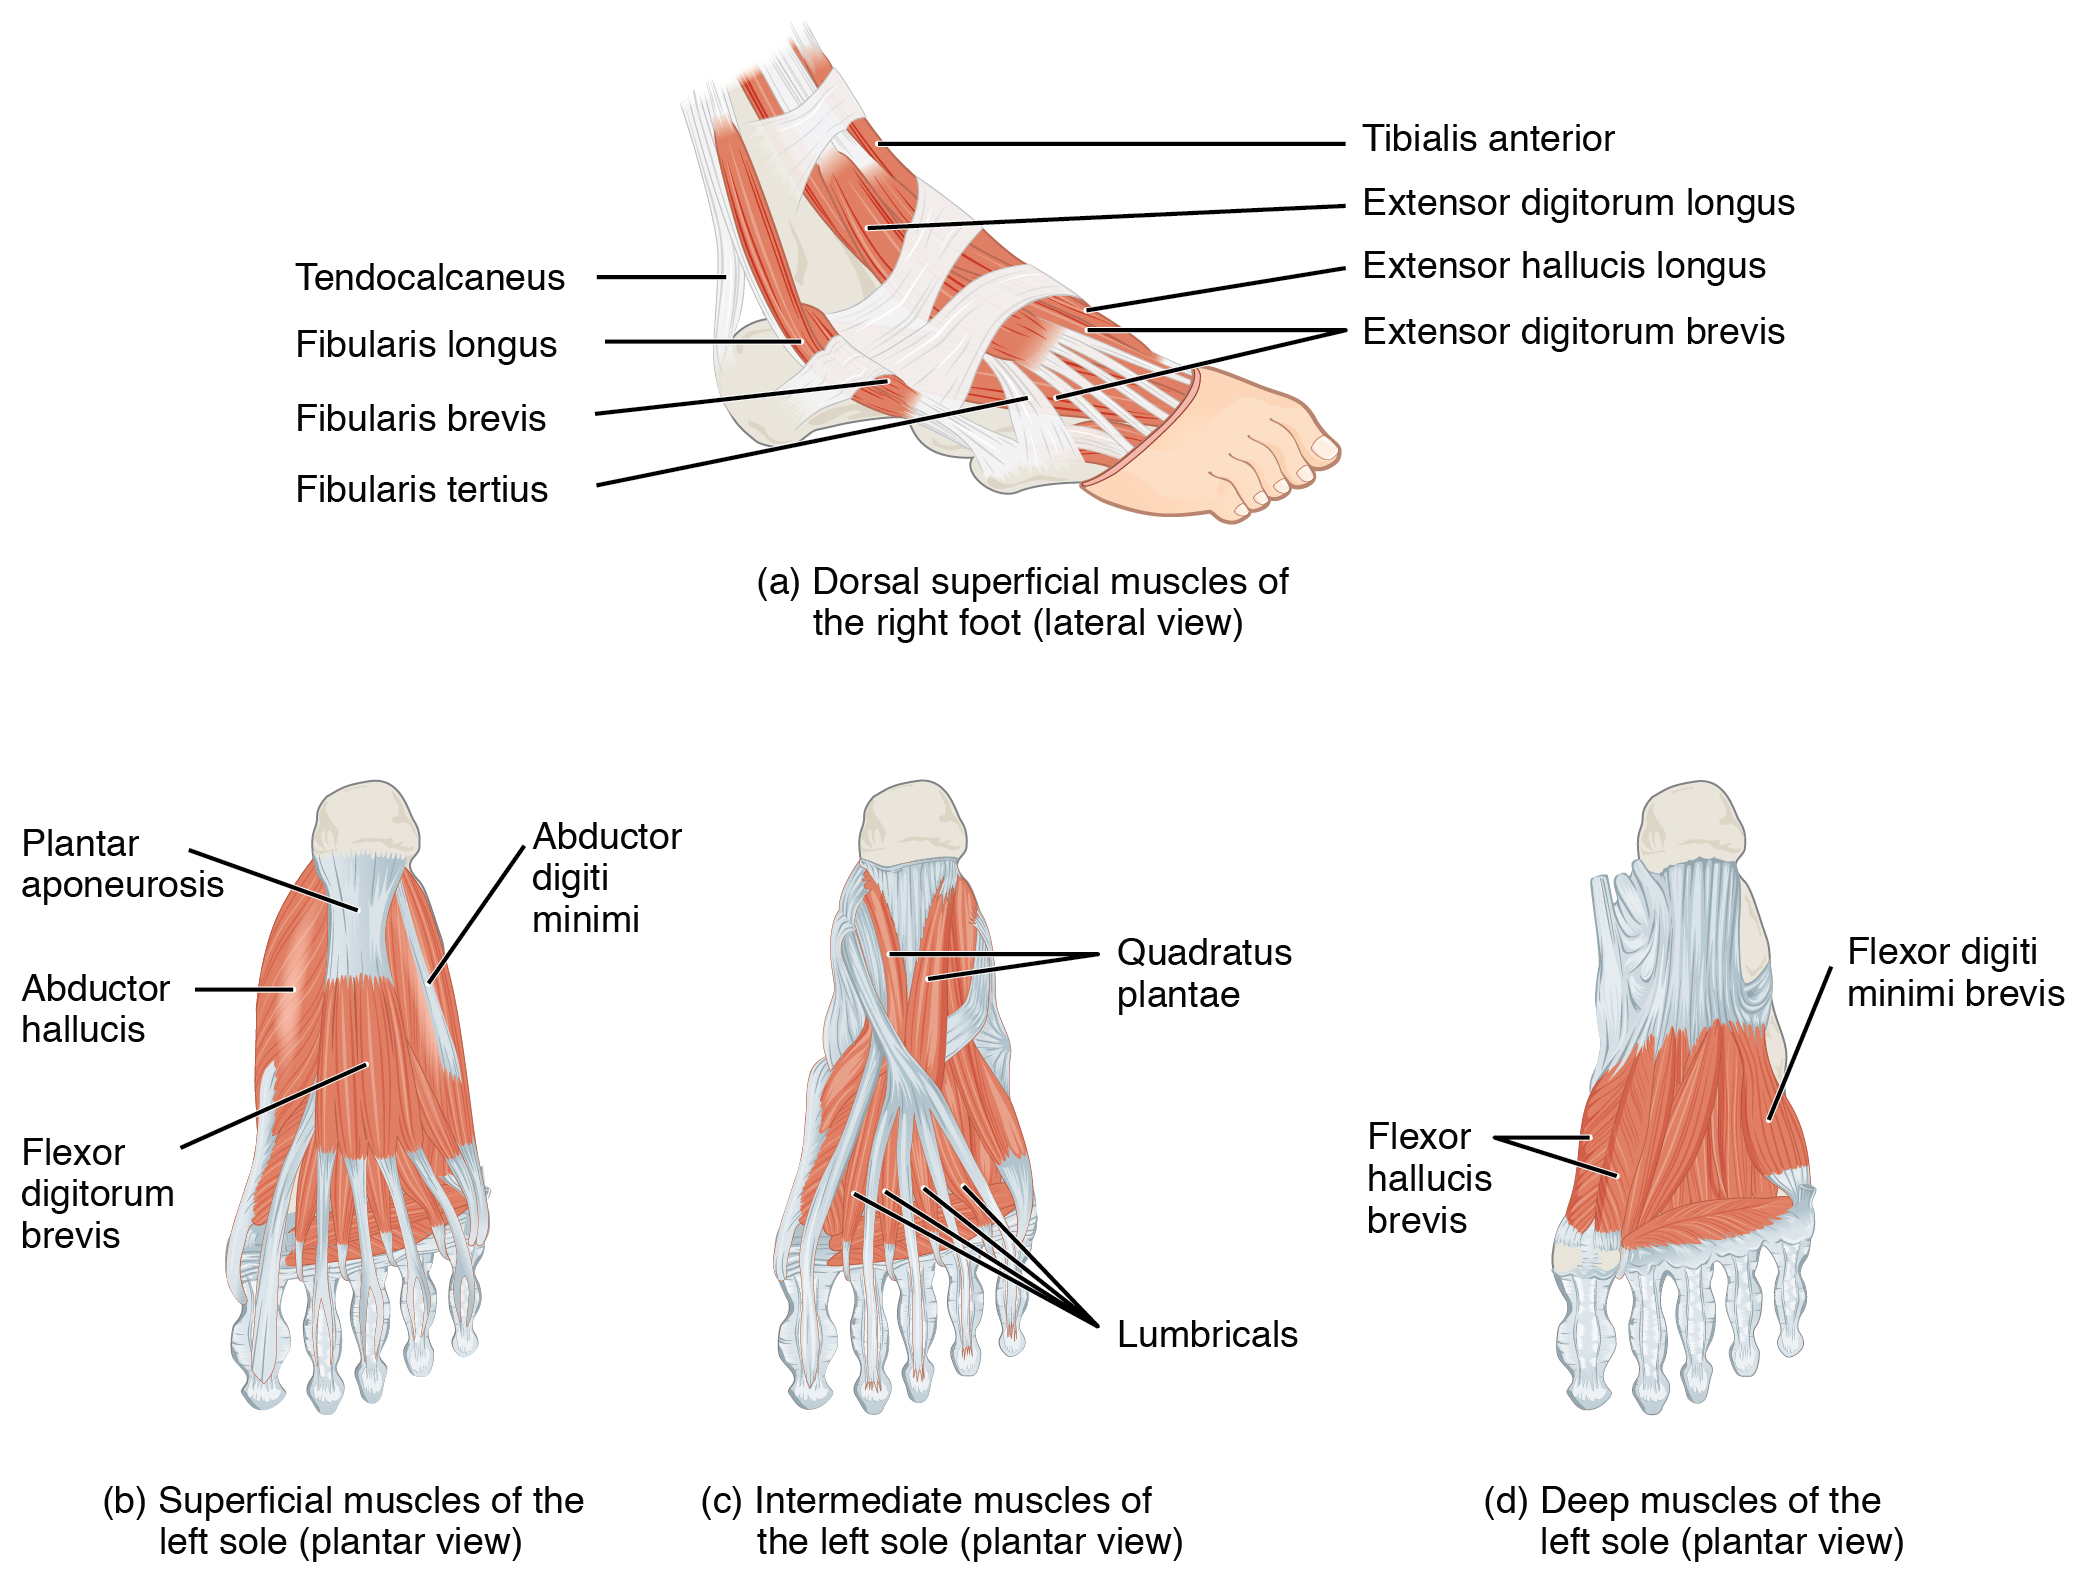 11 6 Appendicular Muscles Of The Pelvic Girdle And Lower